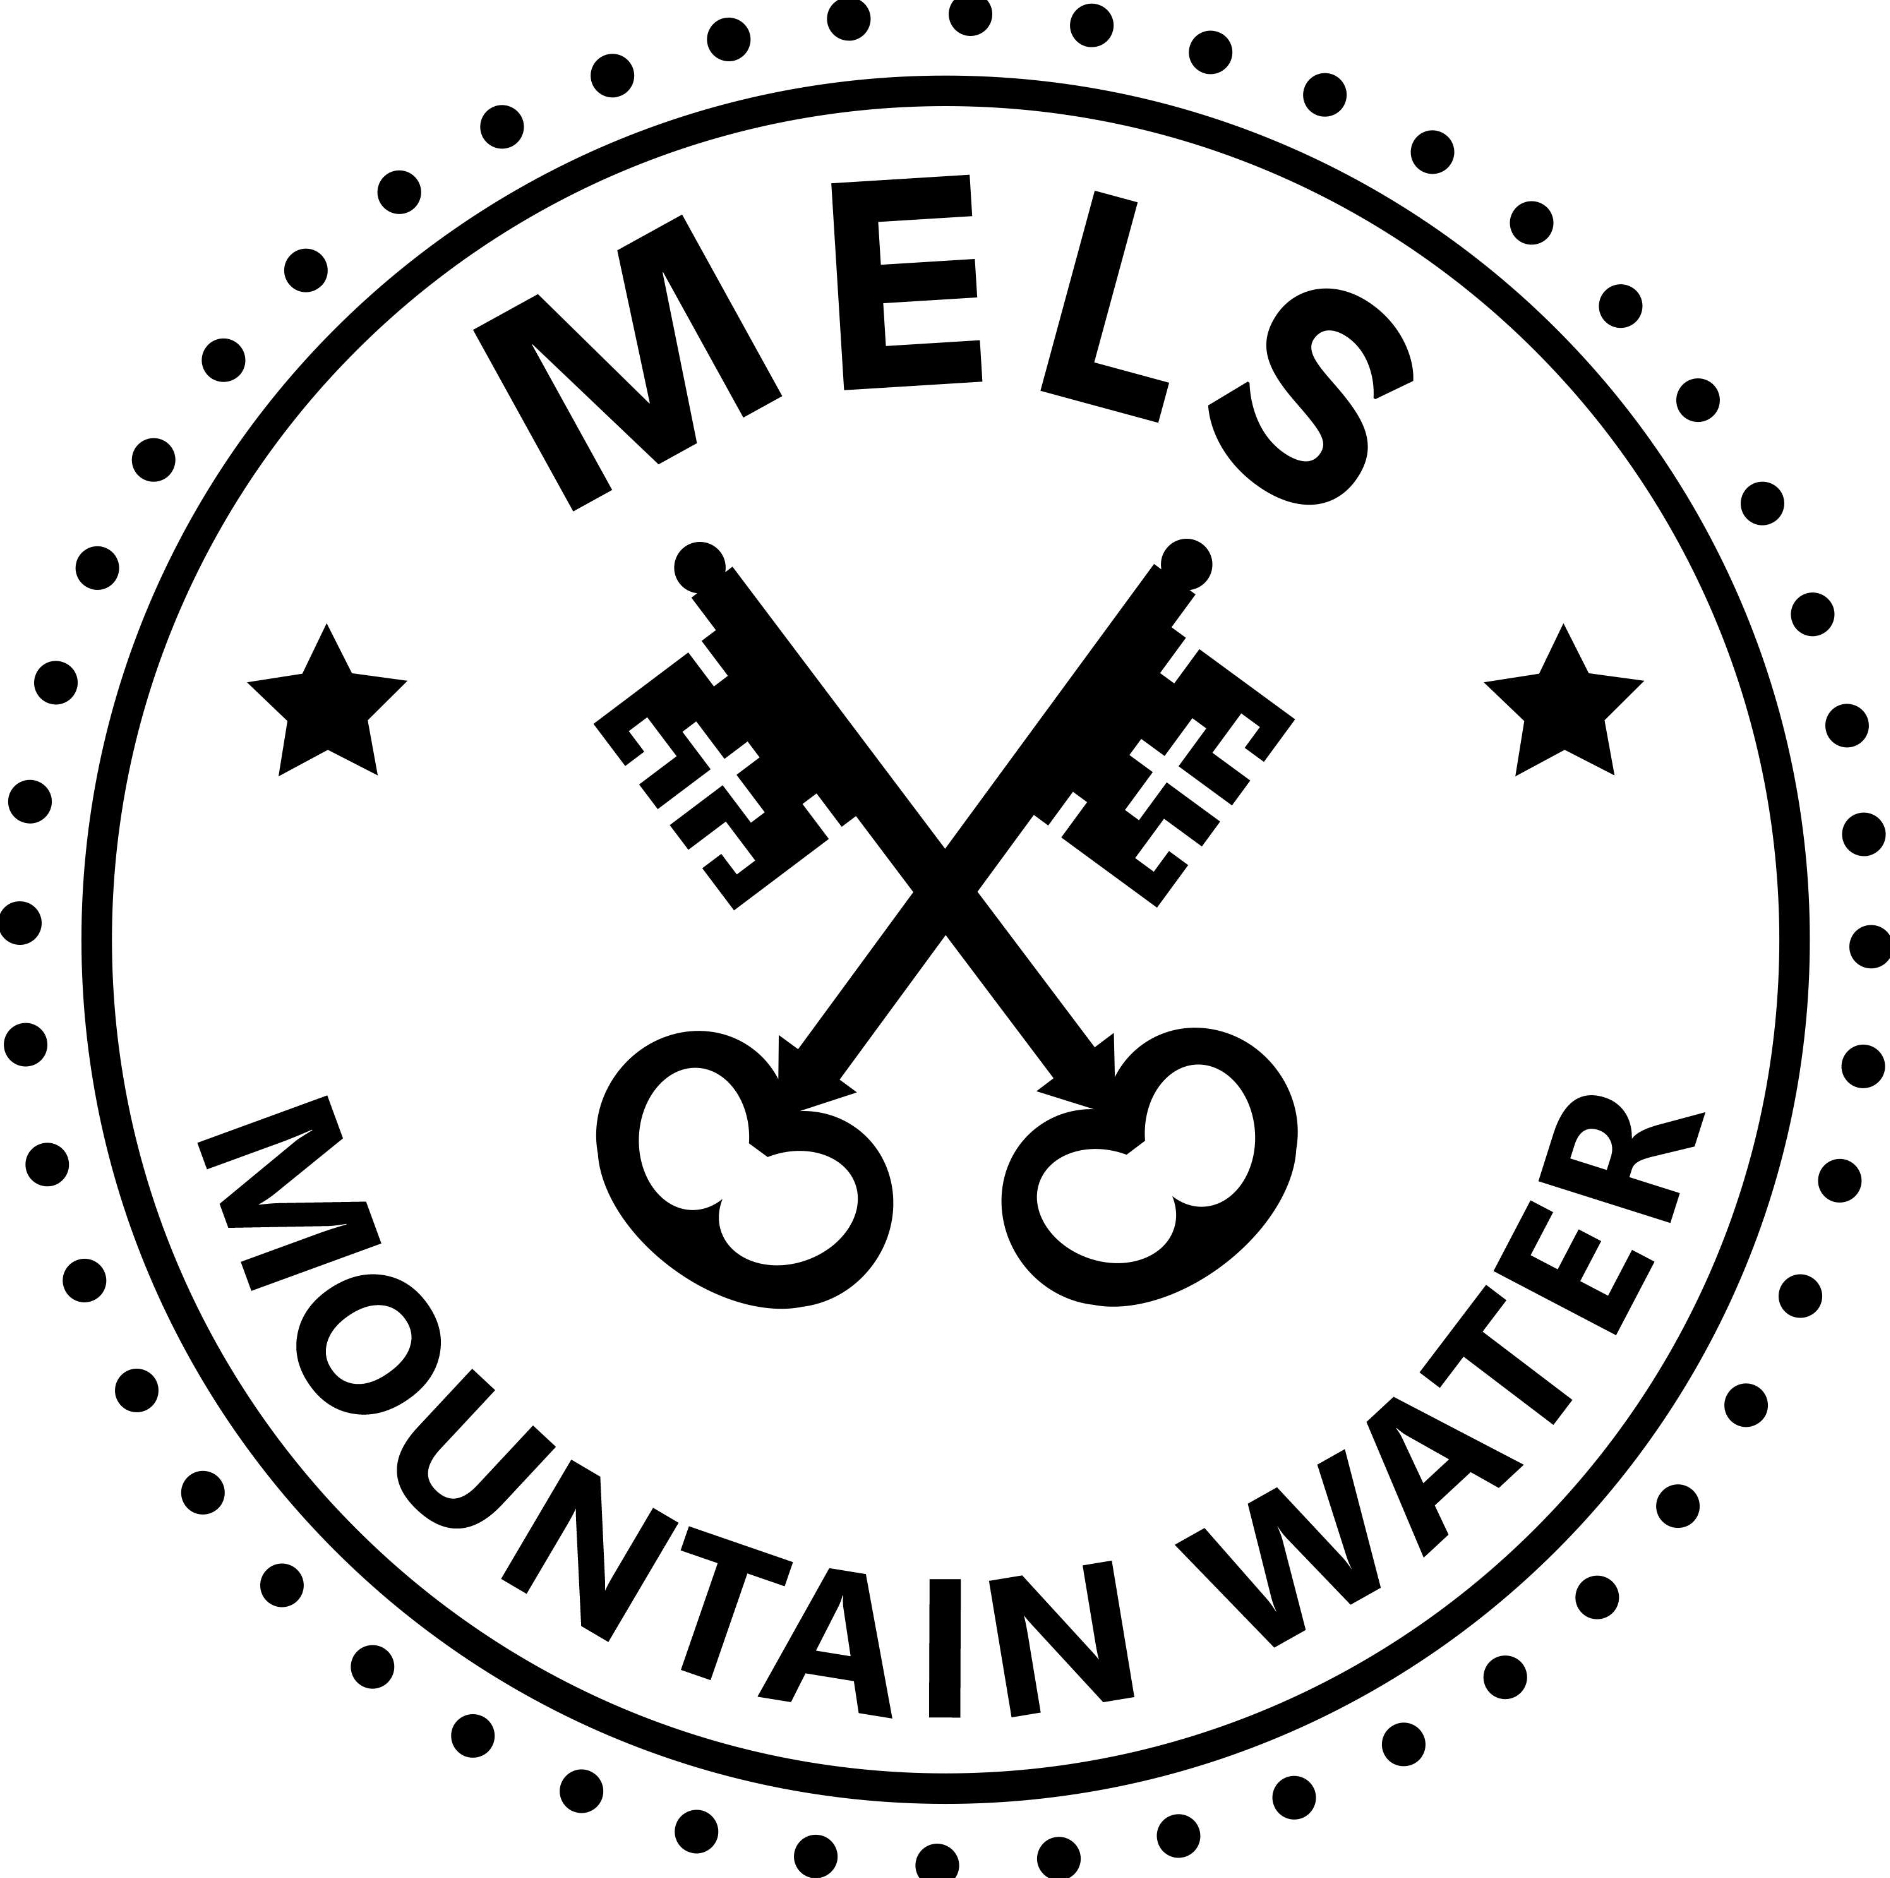 MELS MOUNTAIN WATER